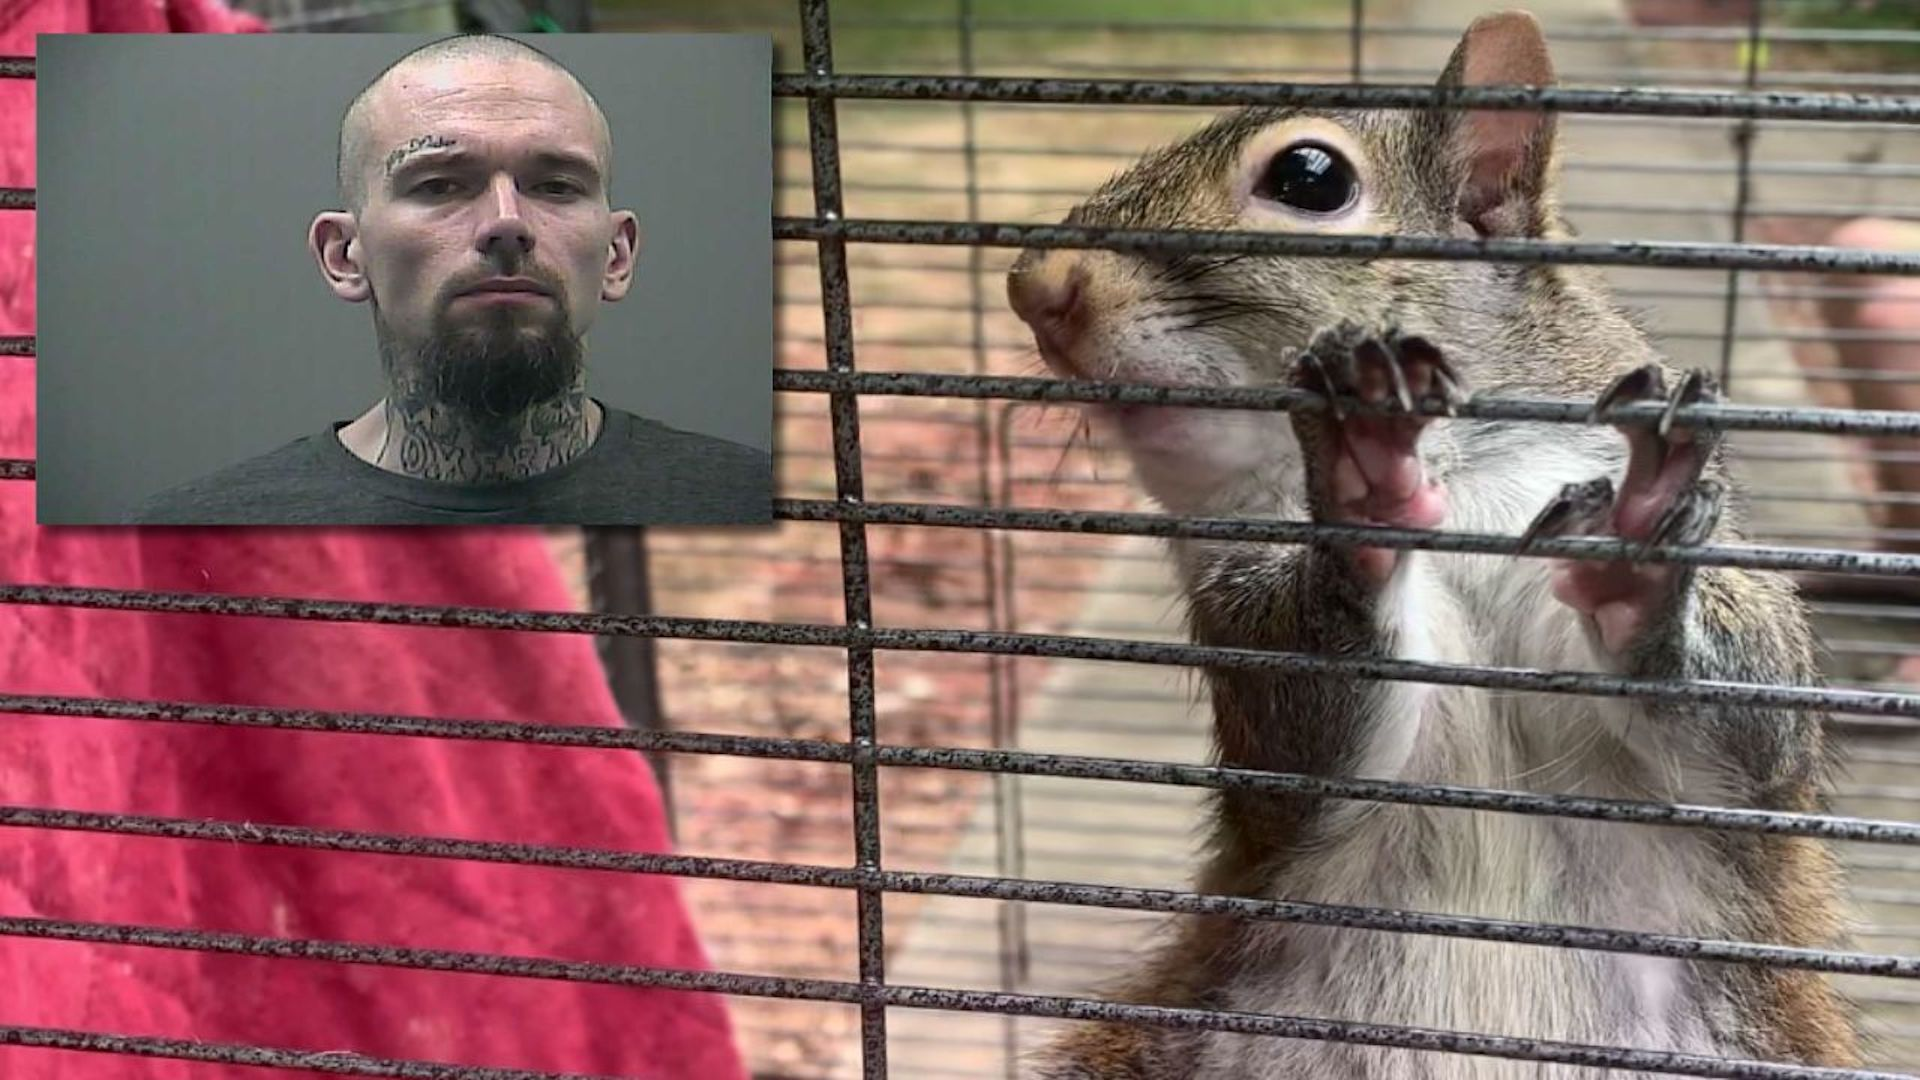 Alabama Man On The Lam Insists He Didn't Give Meth To 'Attack Squirrel'